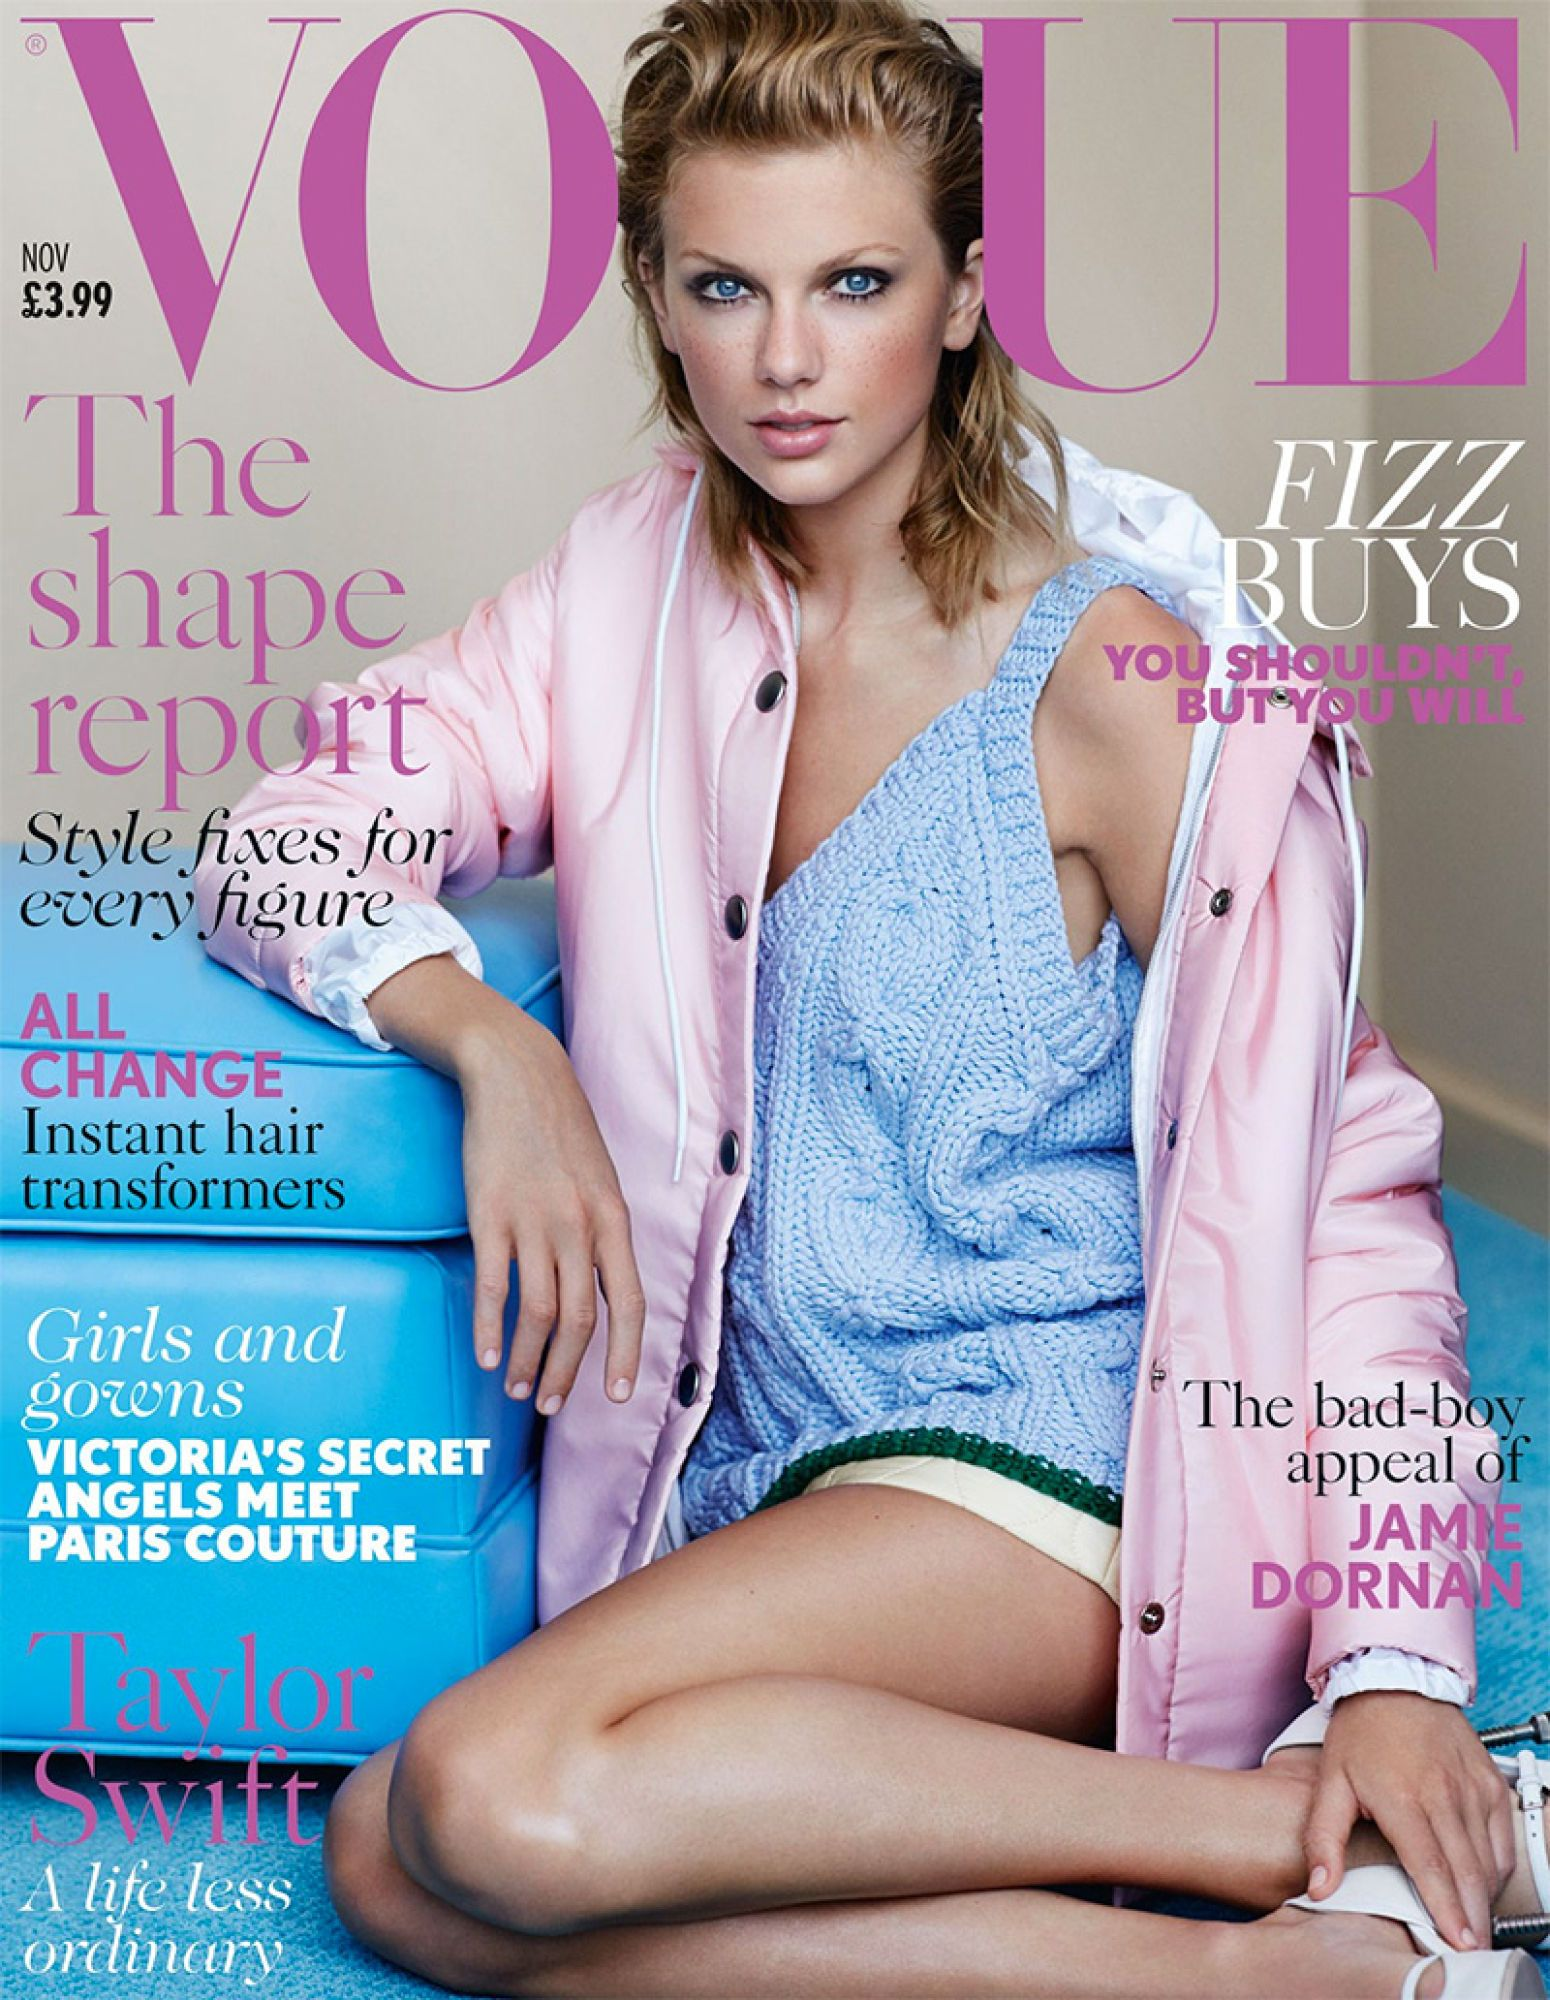 Taylor Swift S Forehead Makes Rare Appearance On Vogue Cover Vogue Covers Vogue Uk Vogue Magazine Covers